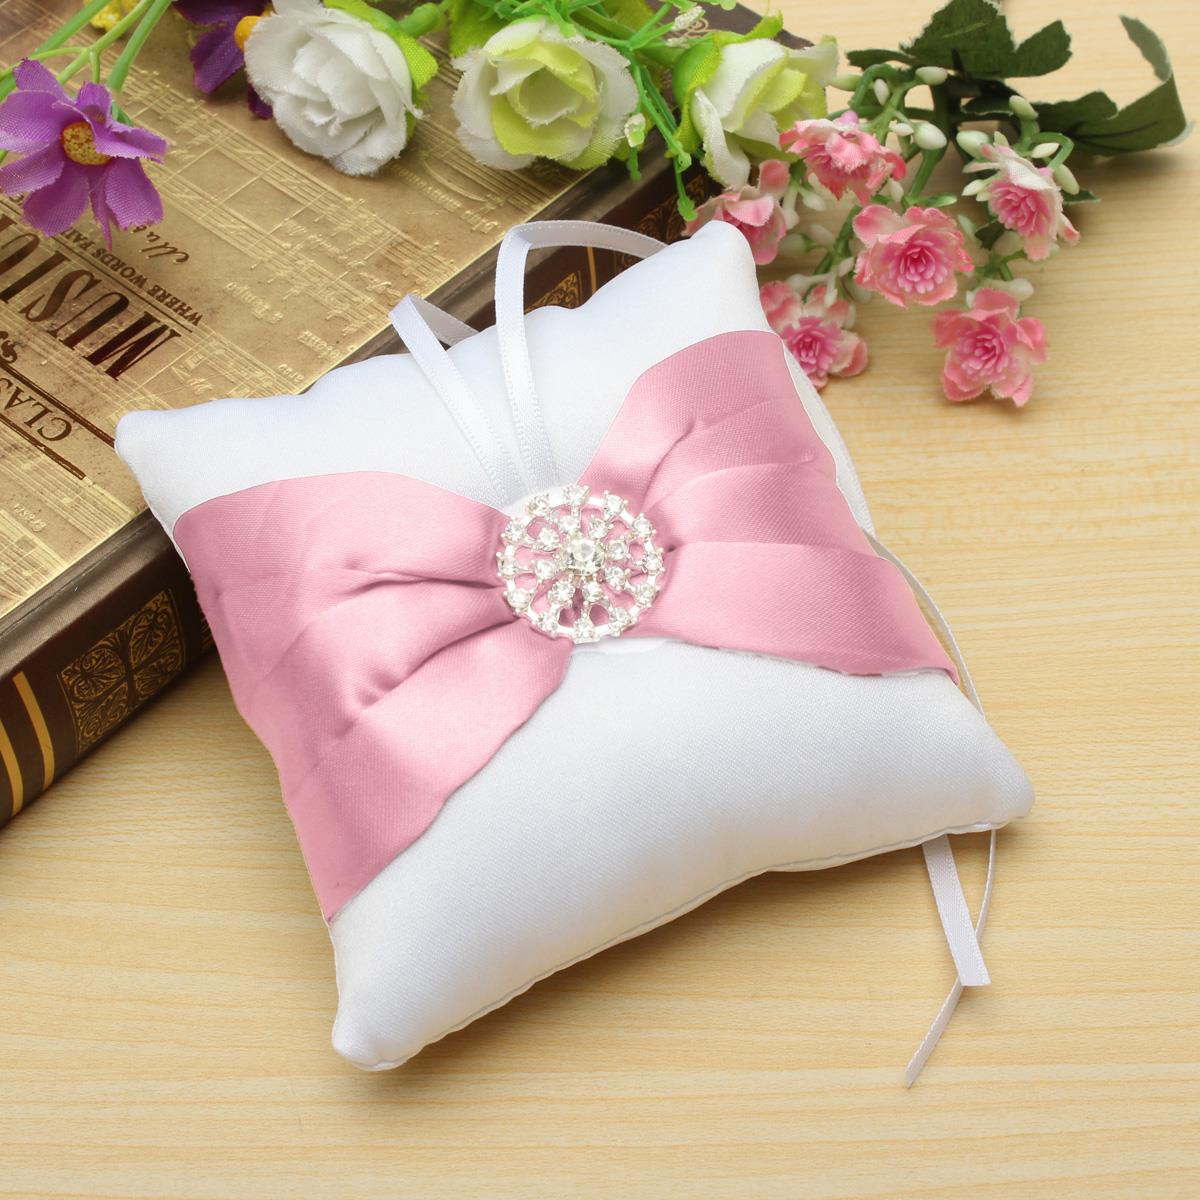 9cm*9cm Bowknot Diamante Display Cushion Romantic Wedding Ring Gift Cube Pillow Storage Beautiful White Satin(China (Mainland))